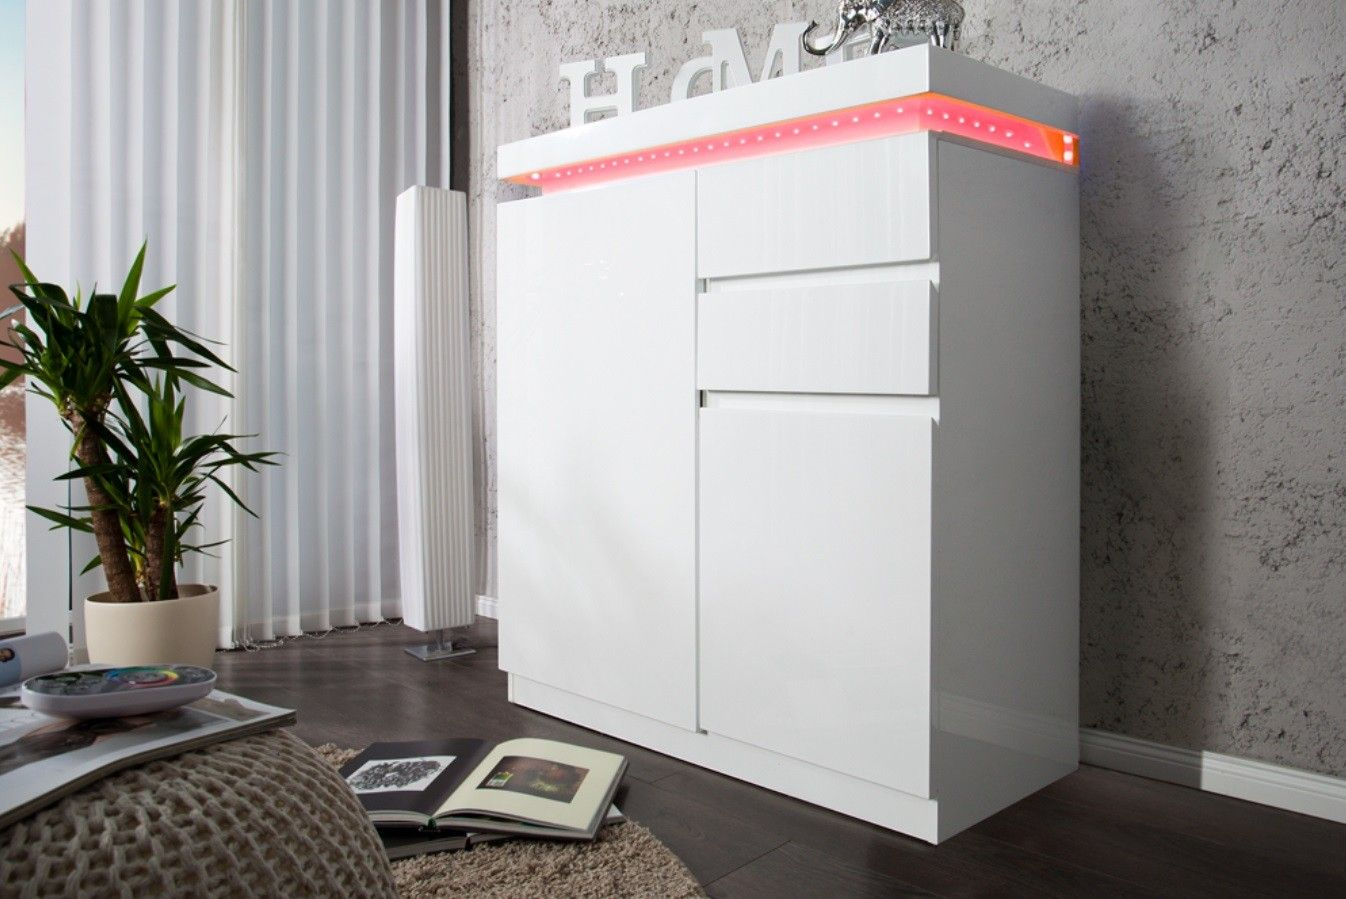 Inspirant Meuble A Chaussures Laque Blanc Locker Storage Home Home Decor